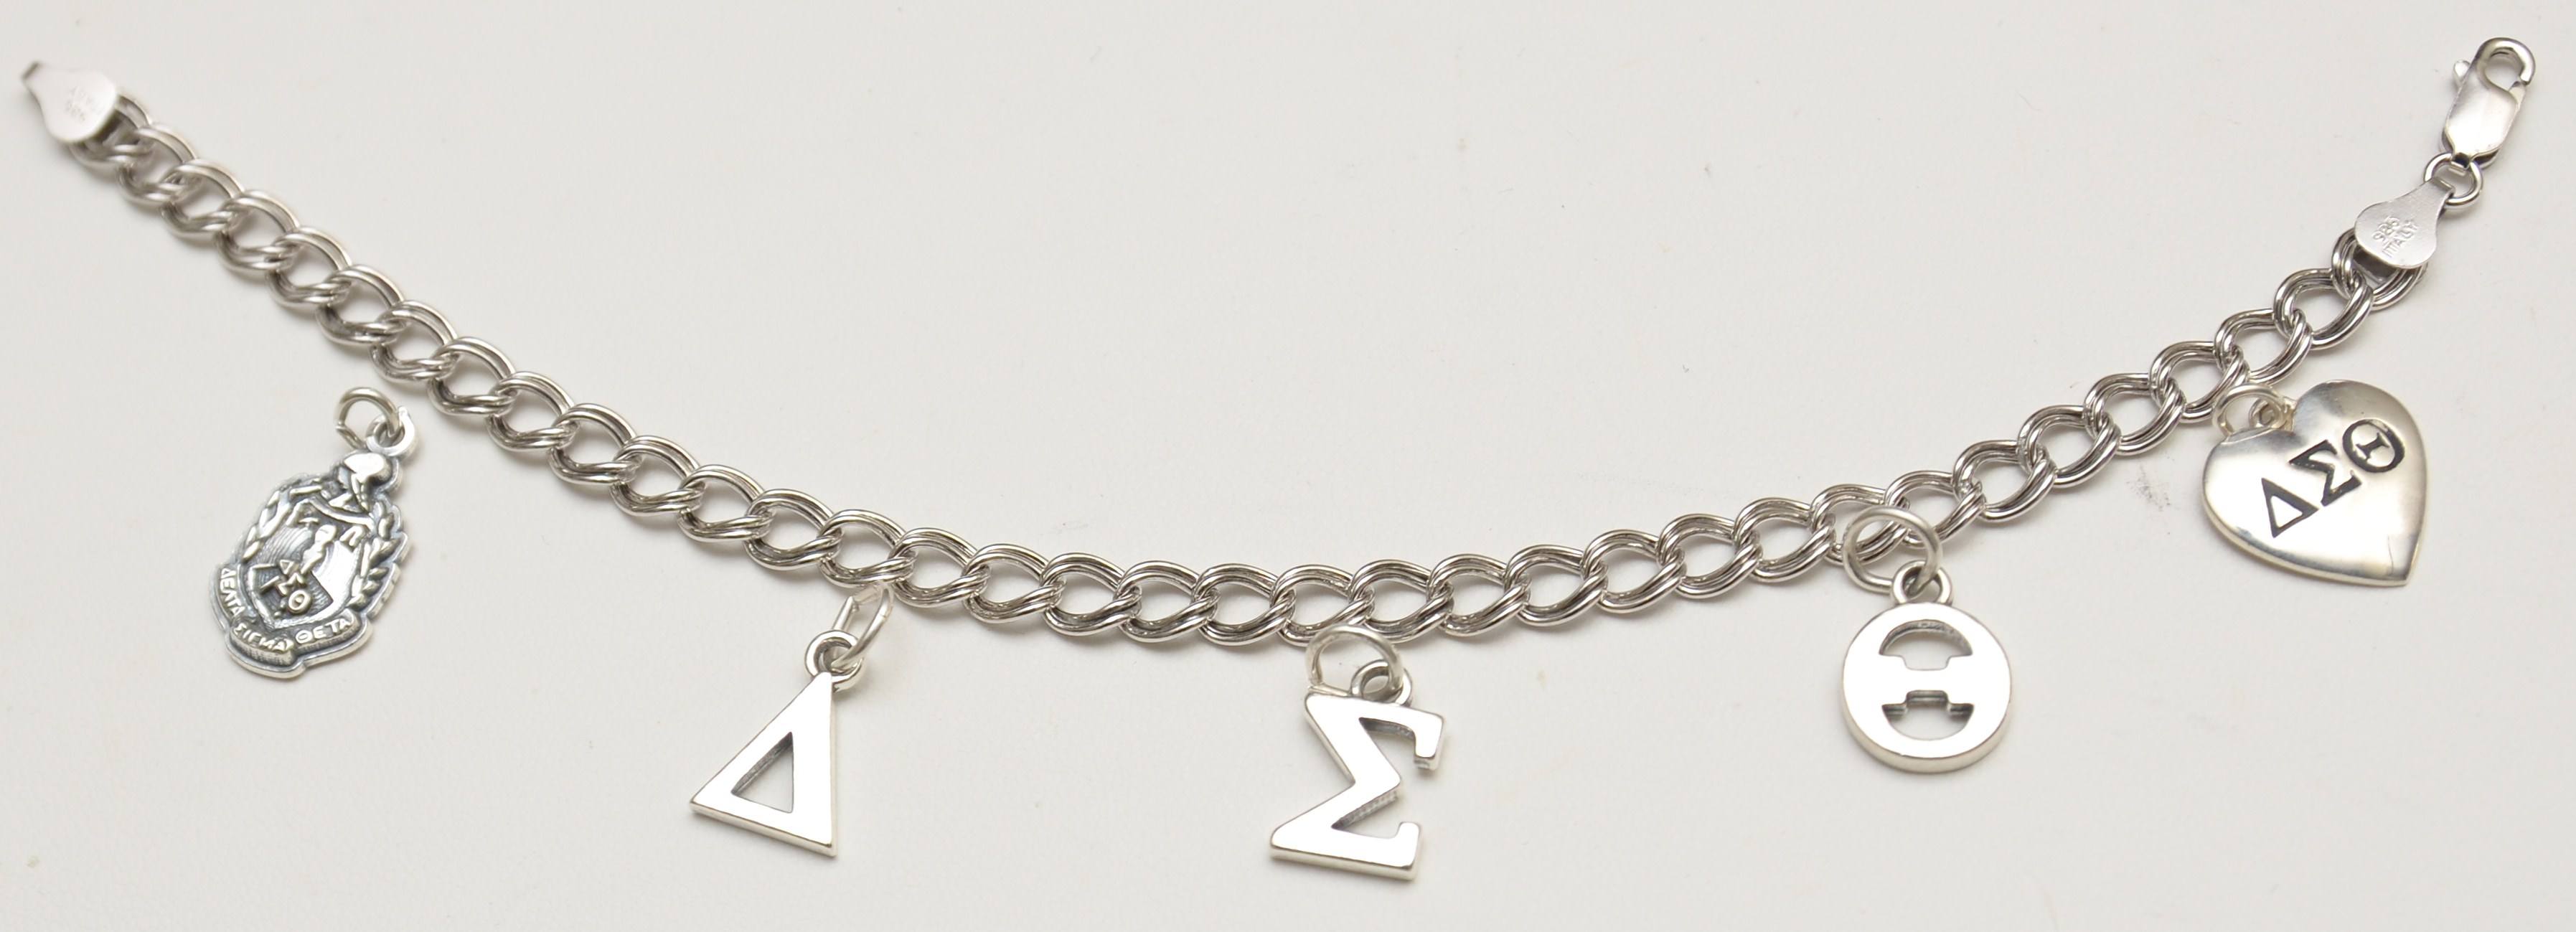 Delta Sigma Theta Sterling Silver Charm Bracelet 5 Charms